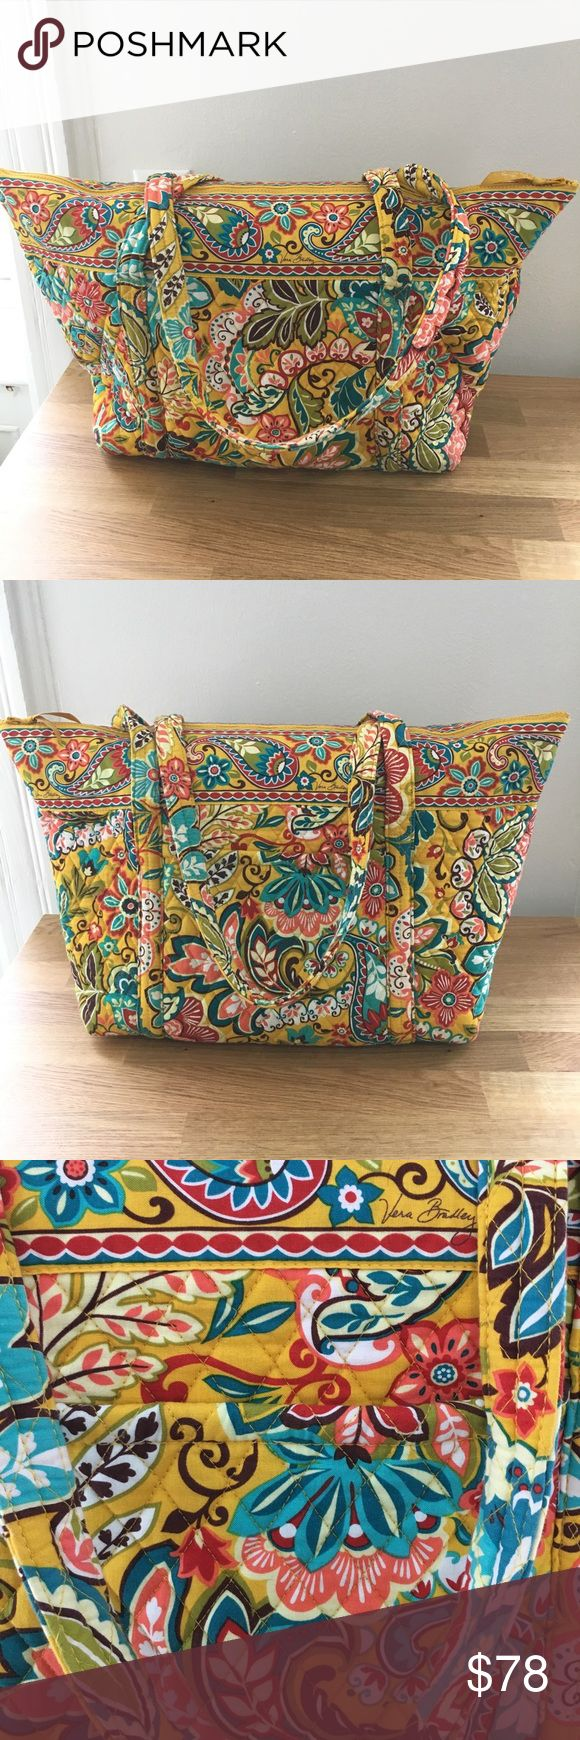 Vera Bradley Travel Bag Vera Bradley Travel Bag. Great for weekend getaways or a carry on travel bag. There are two over the should straps and six pockets on the inside, one pocket on the outside. Great shape barely used Vera Bradley Bags Travel Bags